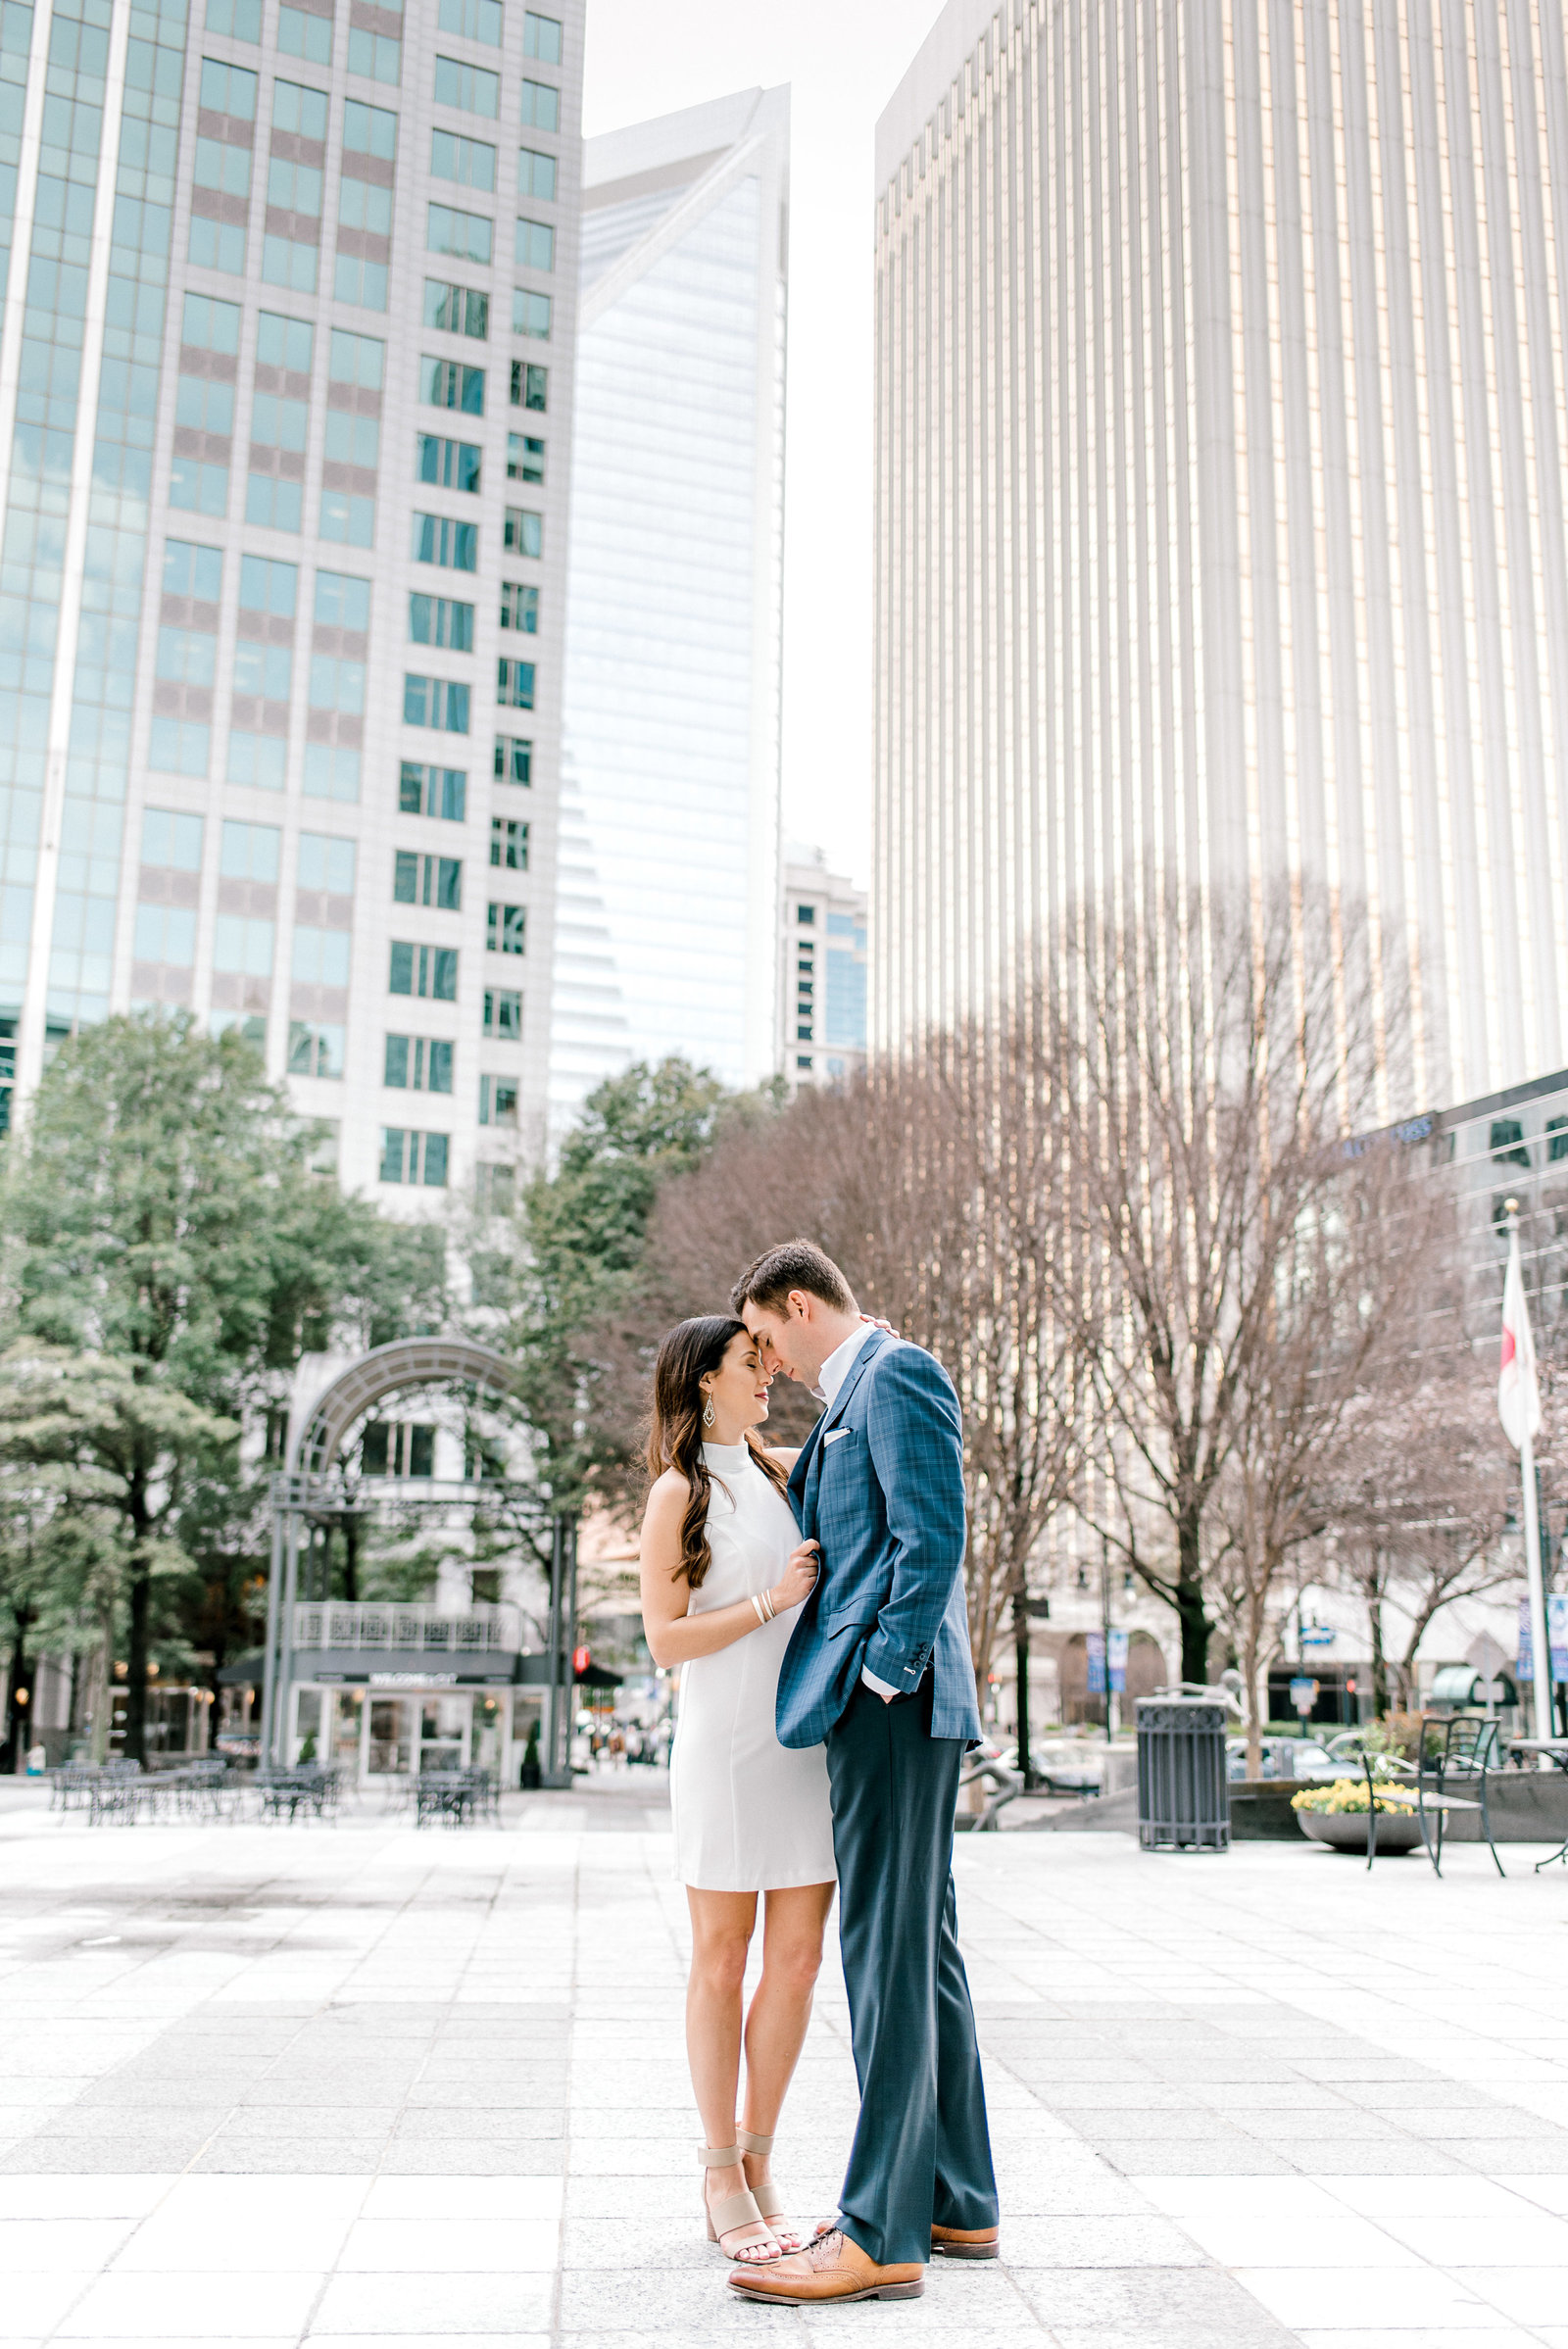 charlotte-engagement-candid-photographer-ballantyne-hotel-uptown-clt-weddings-bride-style-me-pretty-session-wedding-fine-art-bright-and-airy-film-photographer-alyssa-frost-photography-5